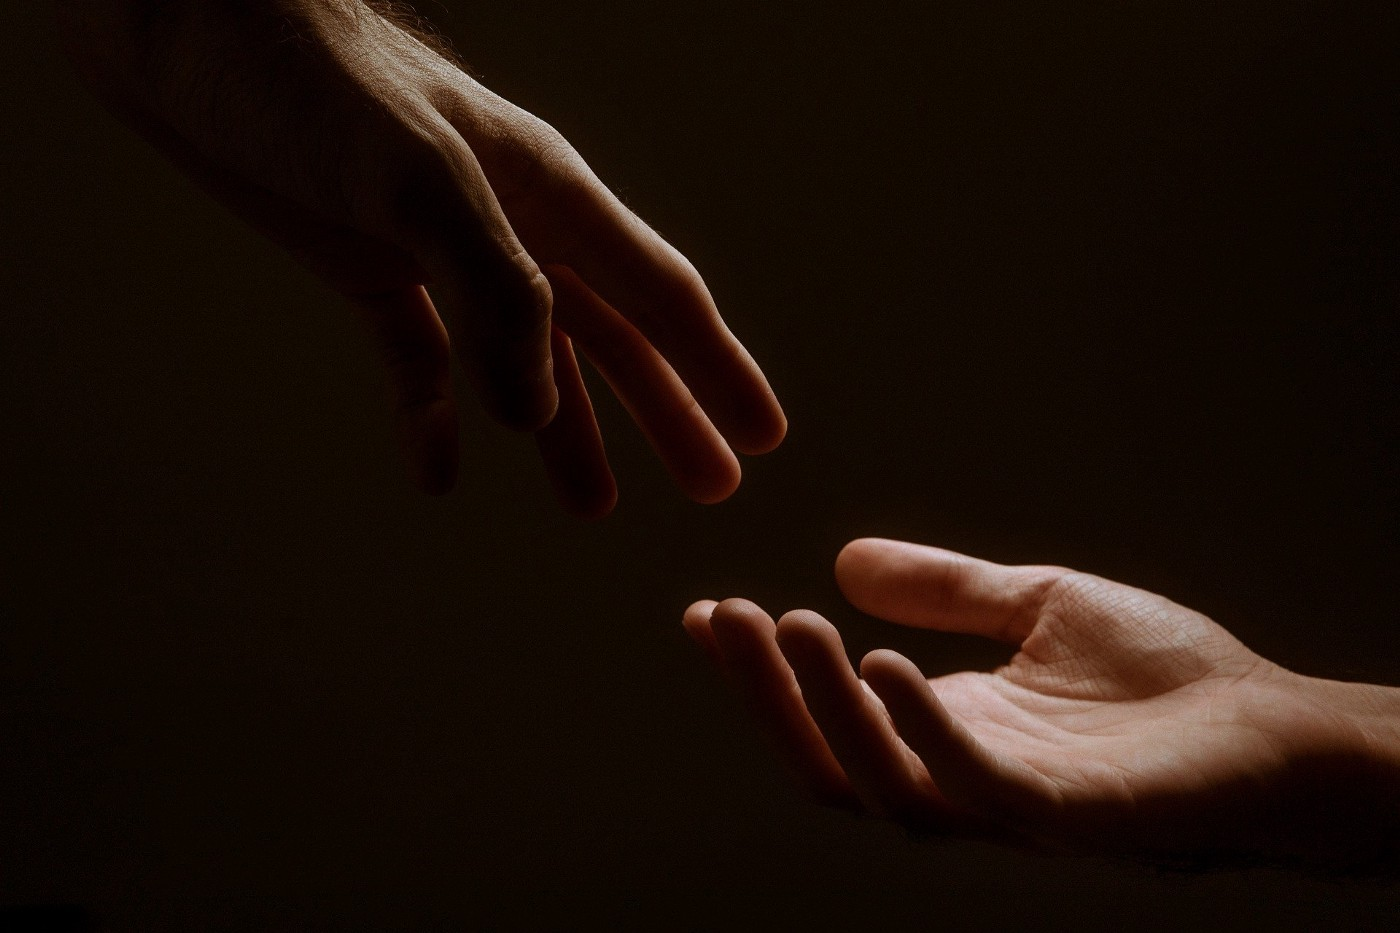 two hands reaching toward one another